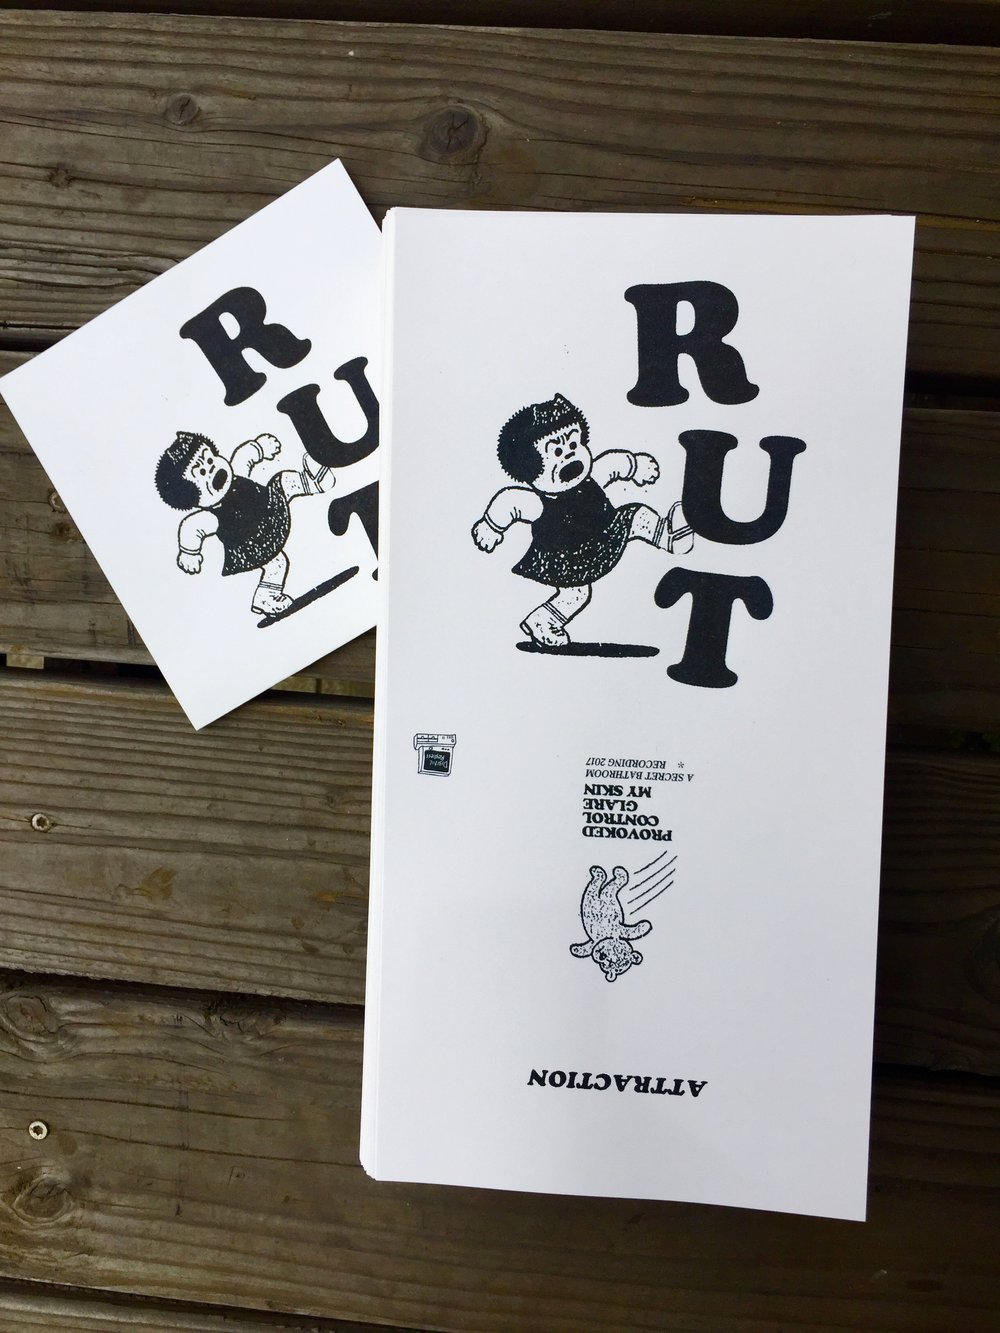 Riso is back to black - Another print job for local record label Digital Regress. Attraction by Santa Rosa hardcore crew RUT is due out shortly. Head to www.digitalregress.com for orders, streaming, and more.